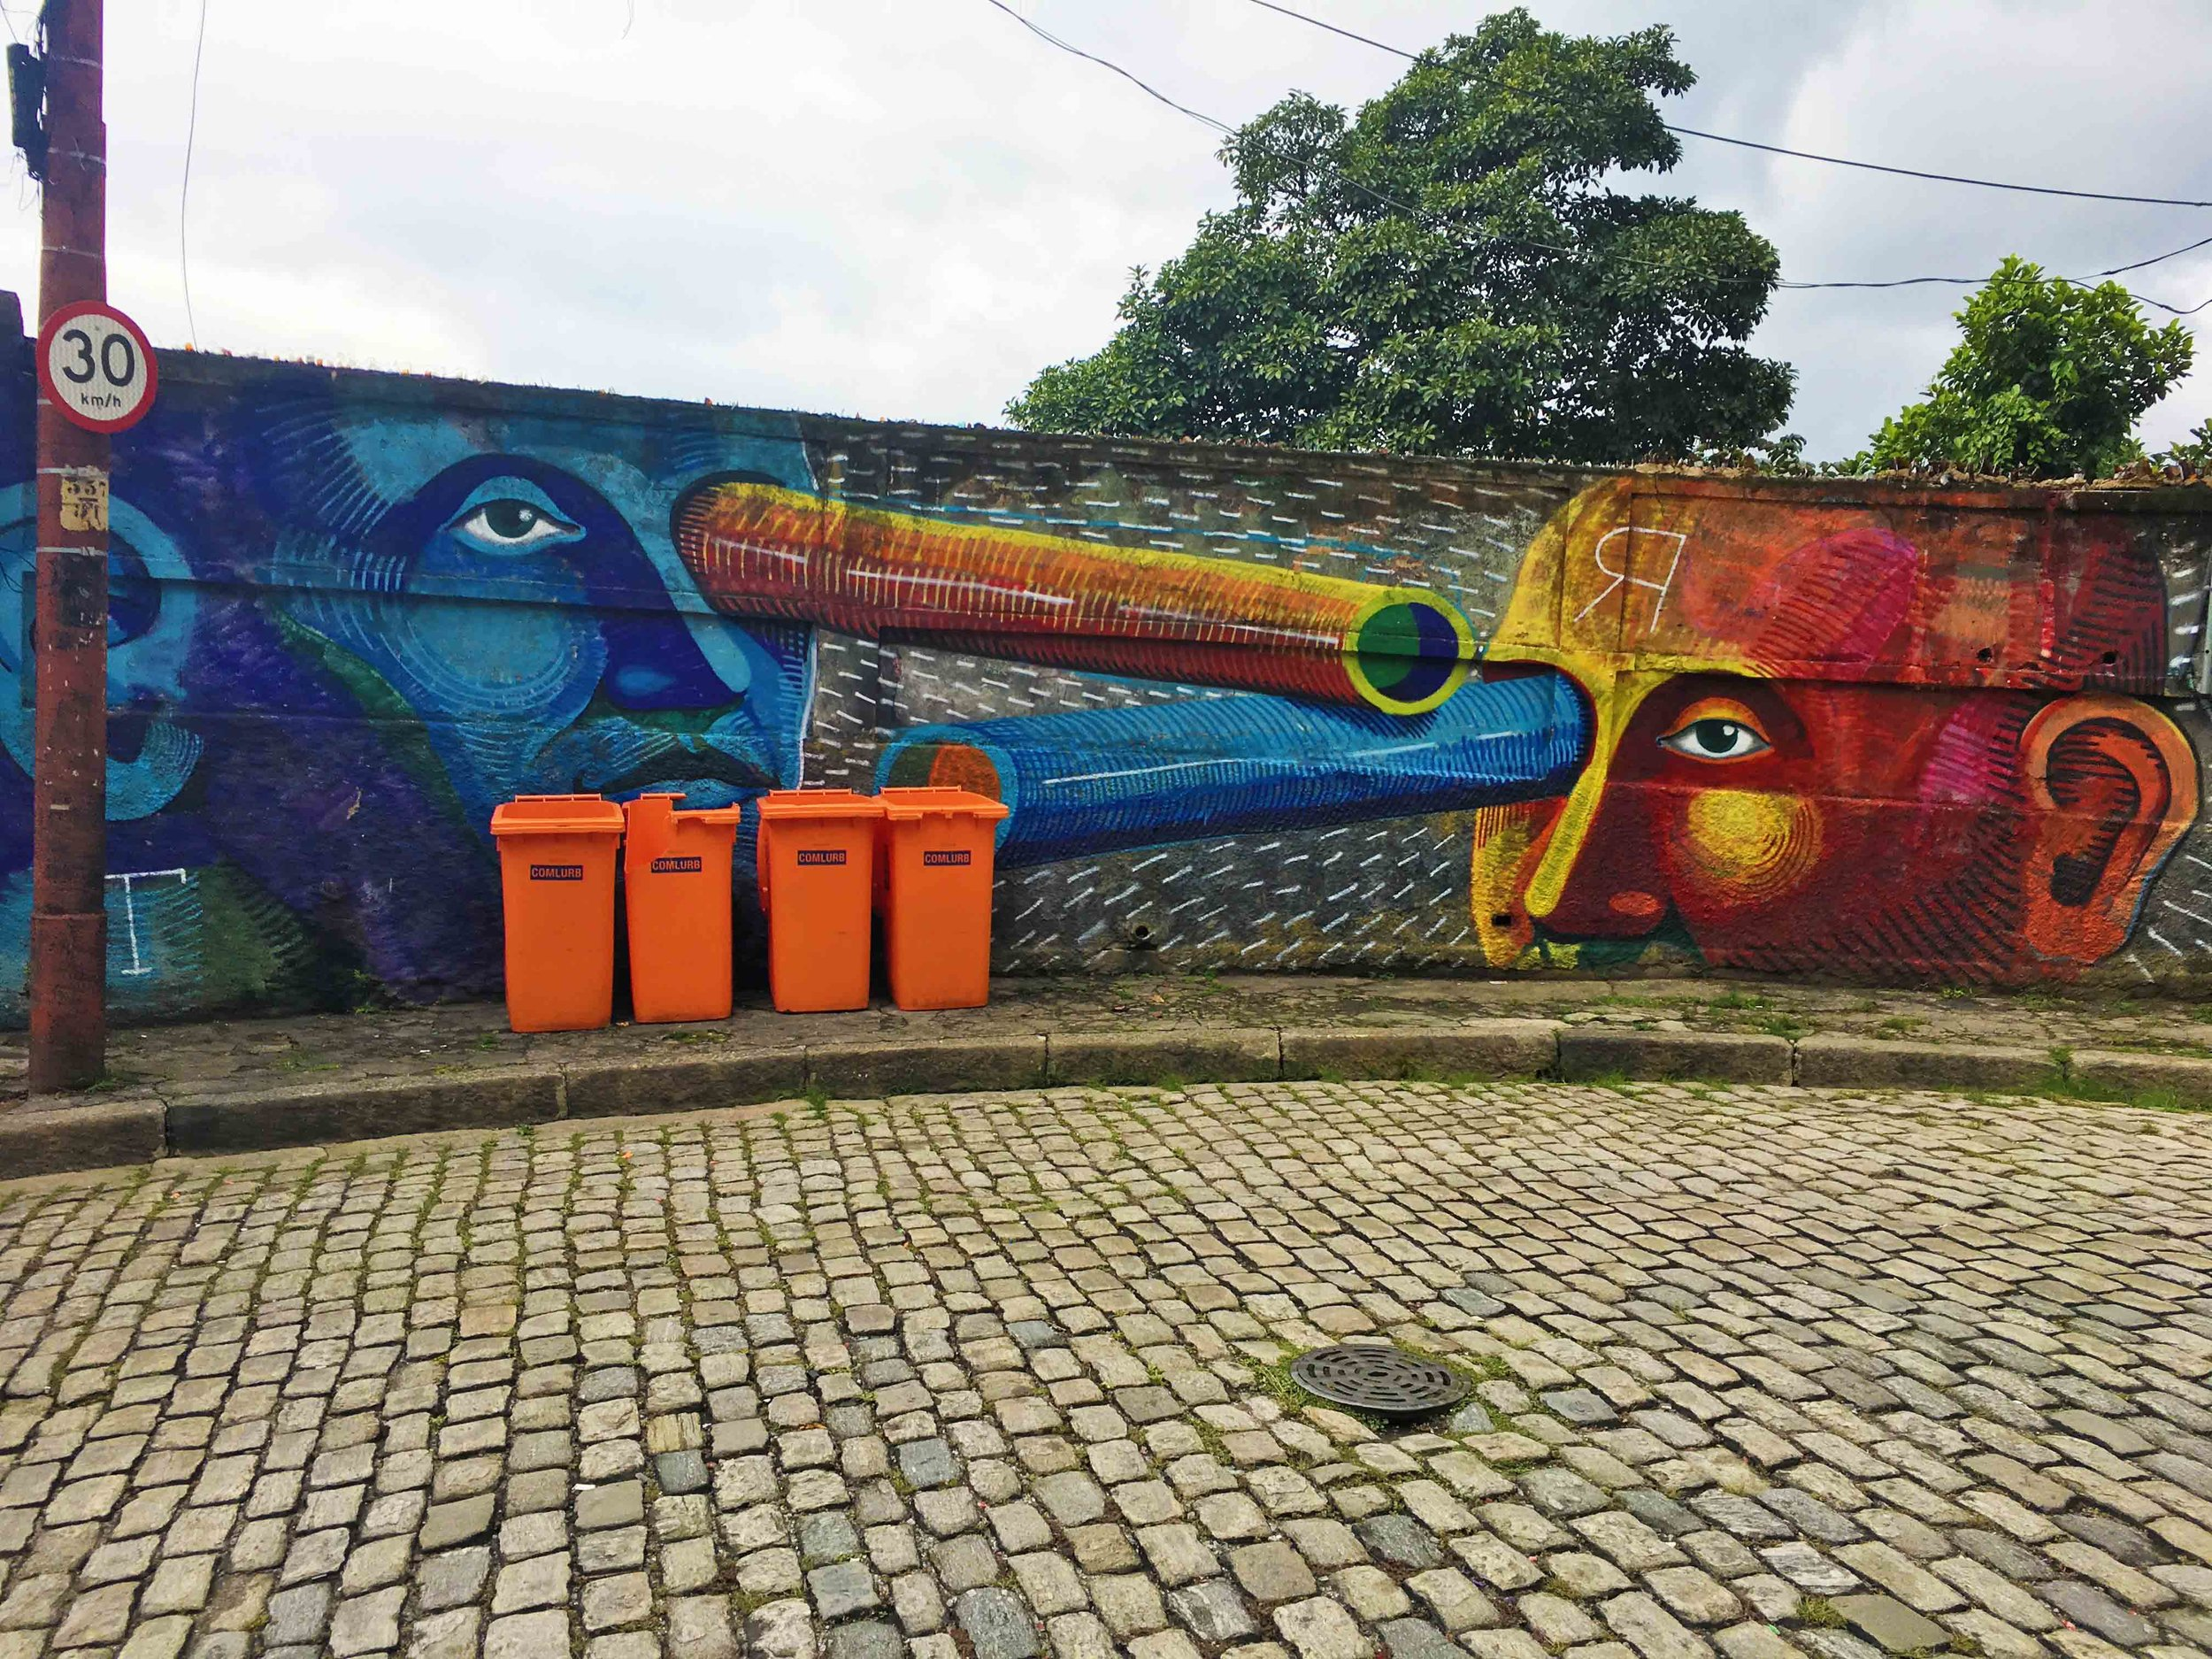 On practically every street corner in quirky santa teresa you will find constantly evolving and provocative street art.